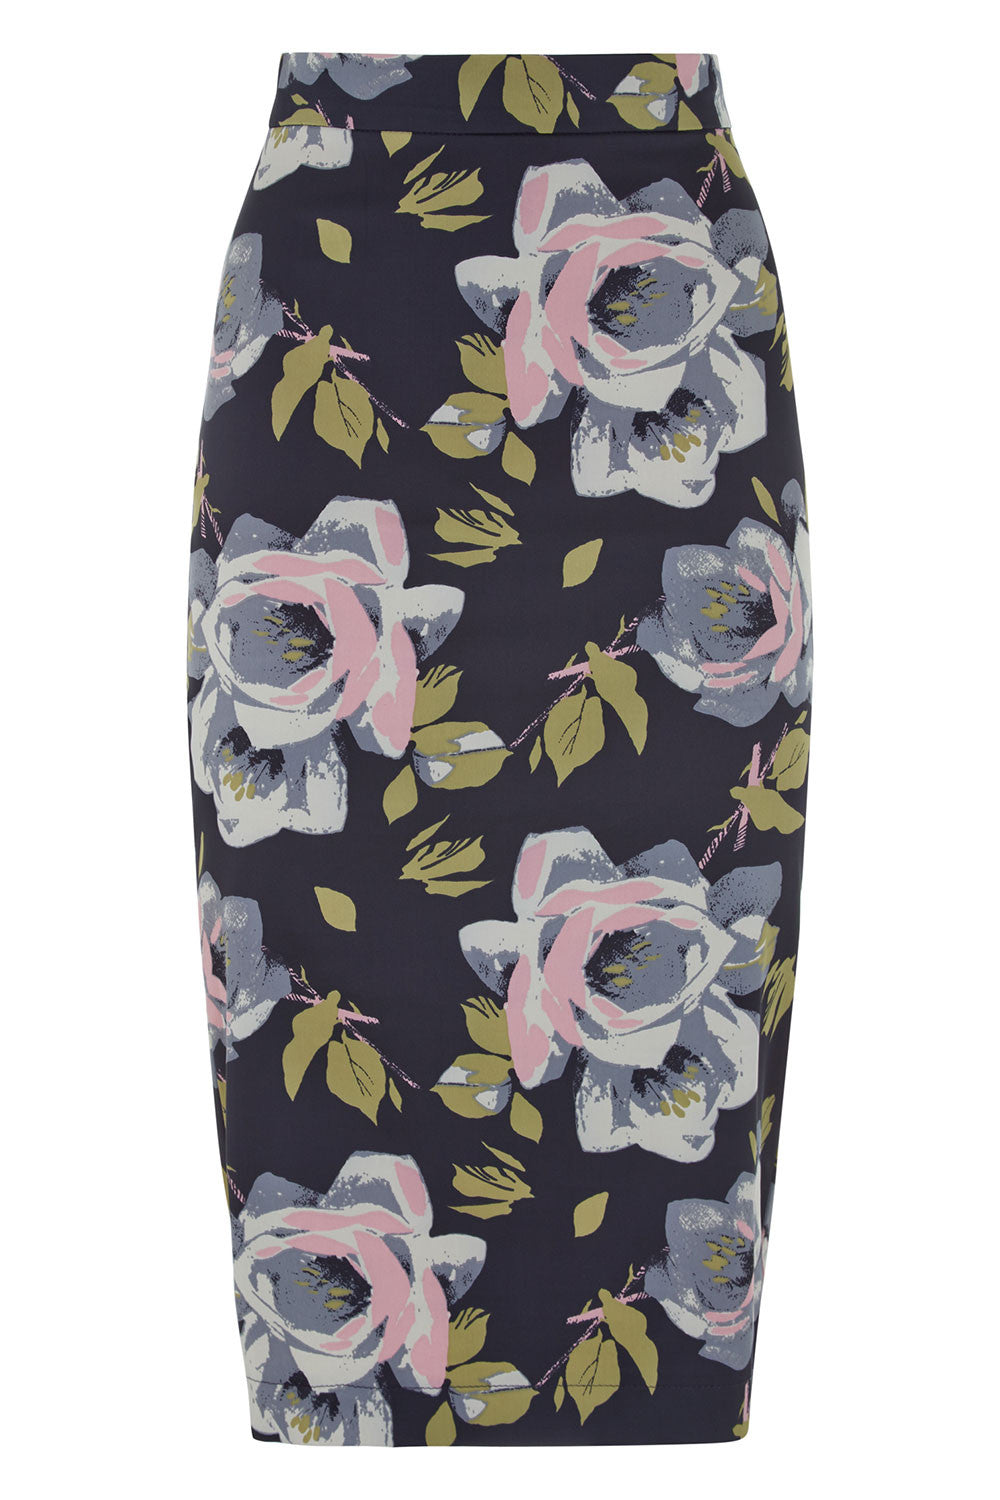 The Wiggle Skirt - Floral Satin